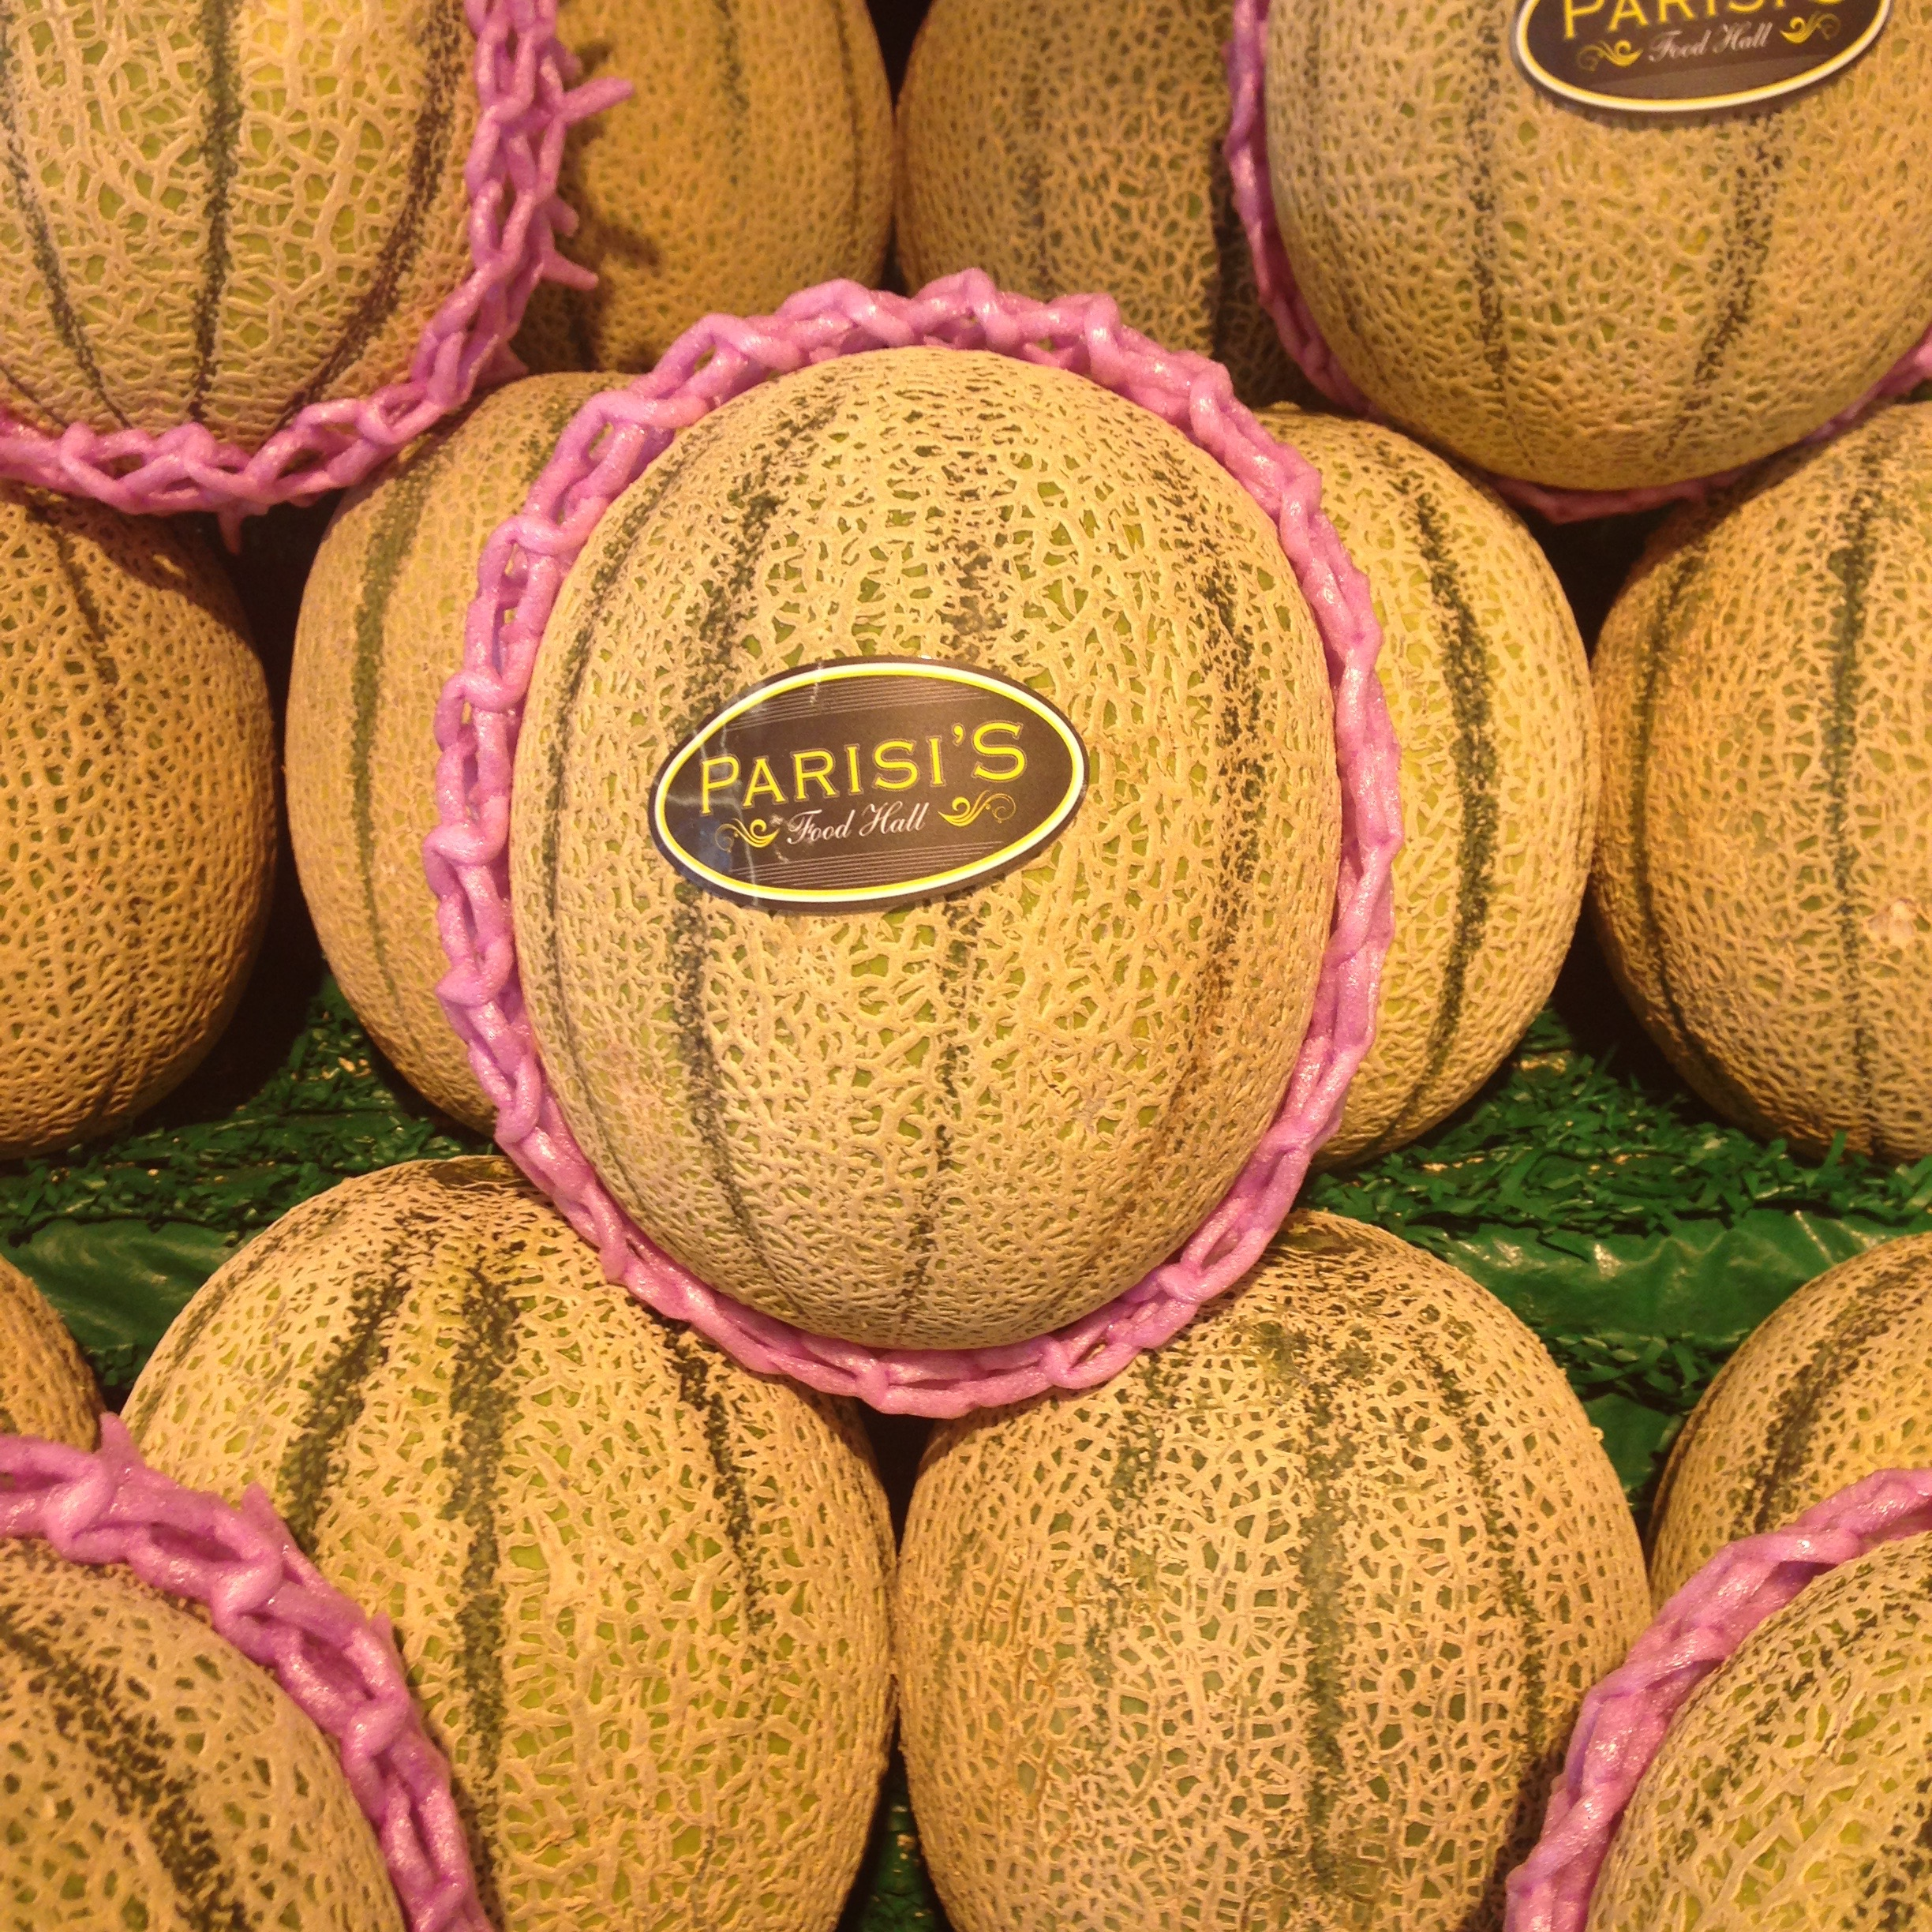 A pink and cheerful rockmellon at Parisi's Food Hall in Rose Bay.